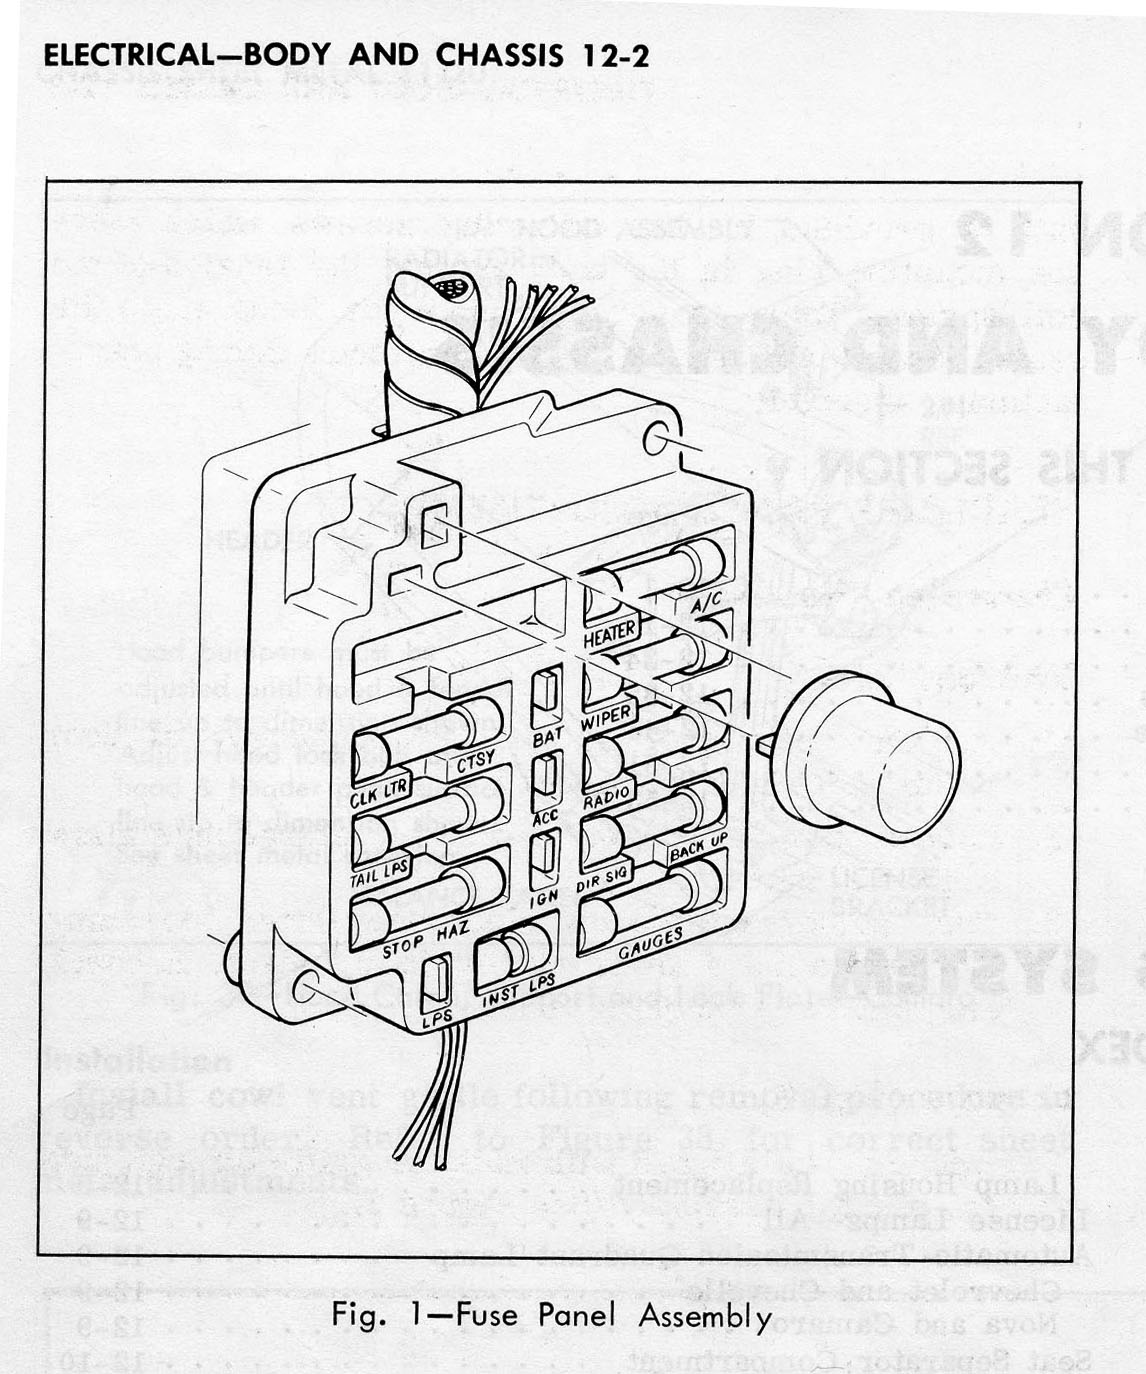 edelbrock electric choke wiring diagram sequence visio stencil 1403 carb www toyskids co chevy library 1406 1405